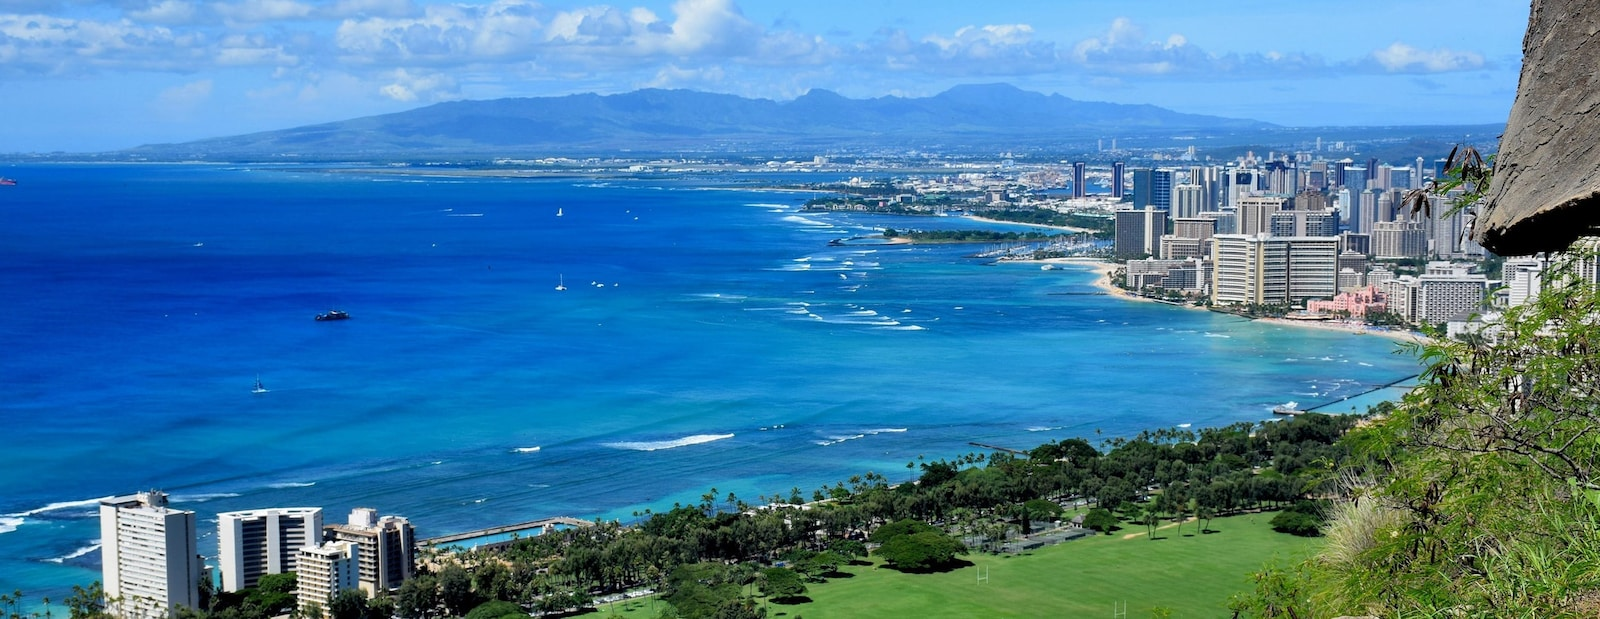 Vacation rentals in Waikiki, Honolulu